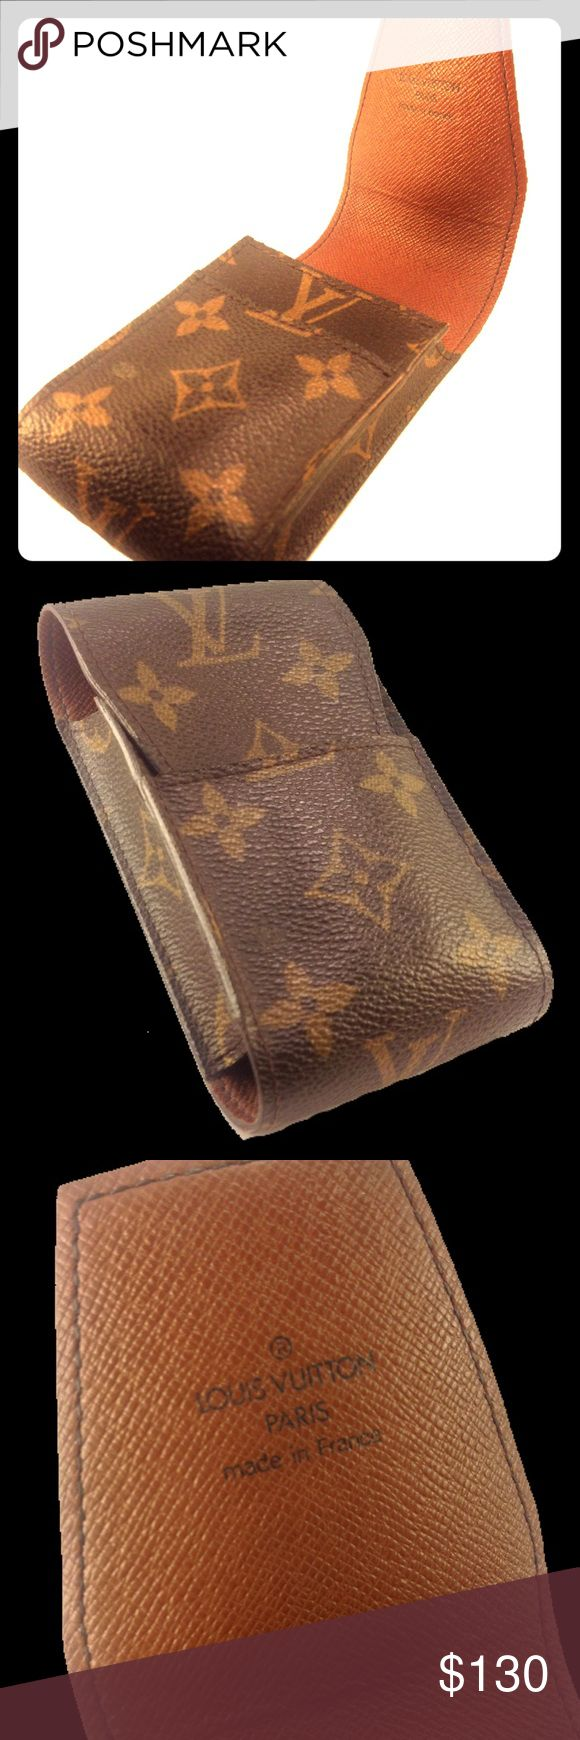 LV cigarette case 2.6x4.7x1.0 inches. Monogram canvas, cross grain leather lining, flap closure, trimmings in natural cowhide leather. Louis Vuitton Other